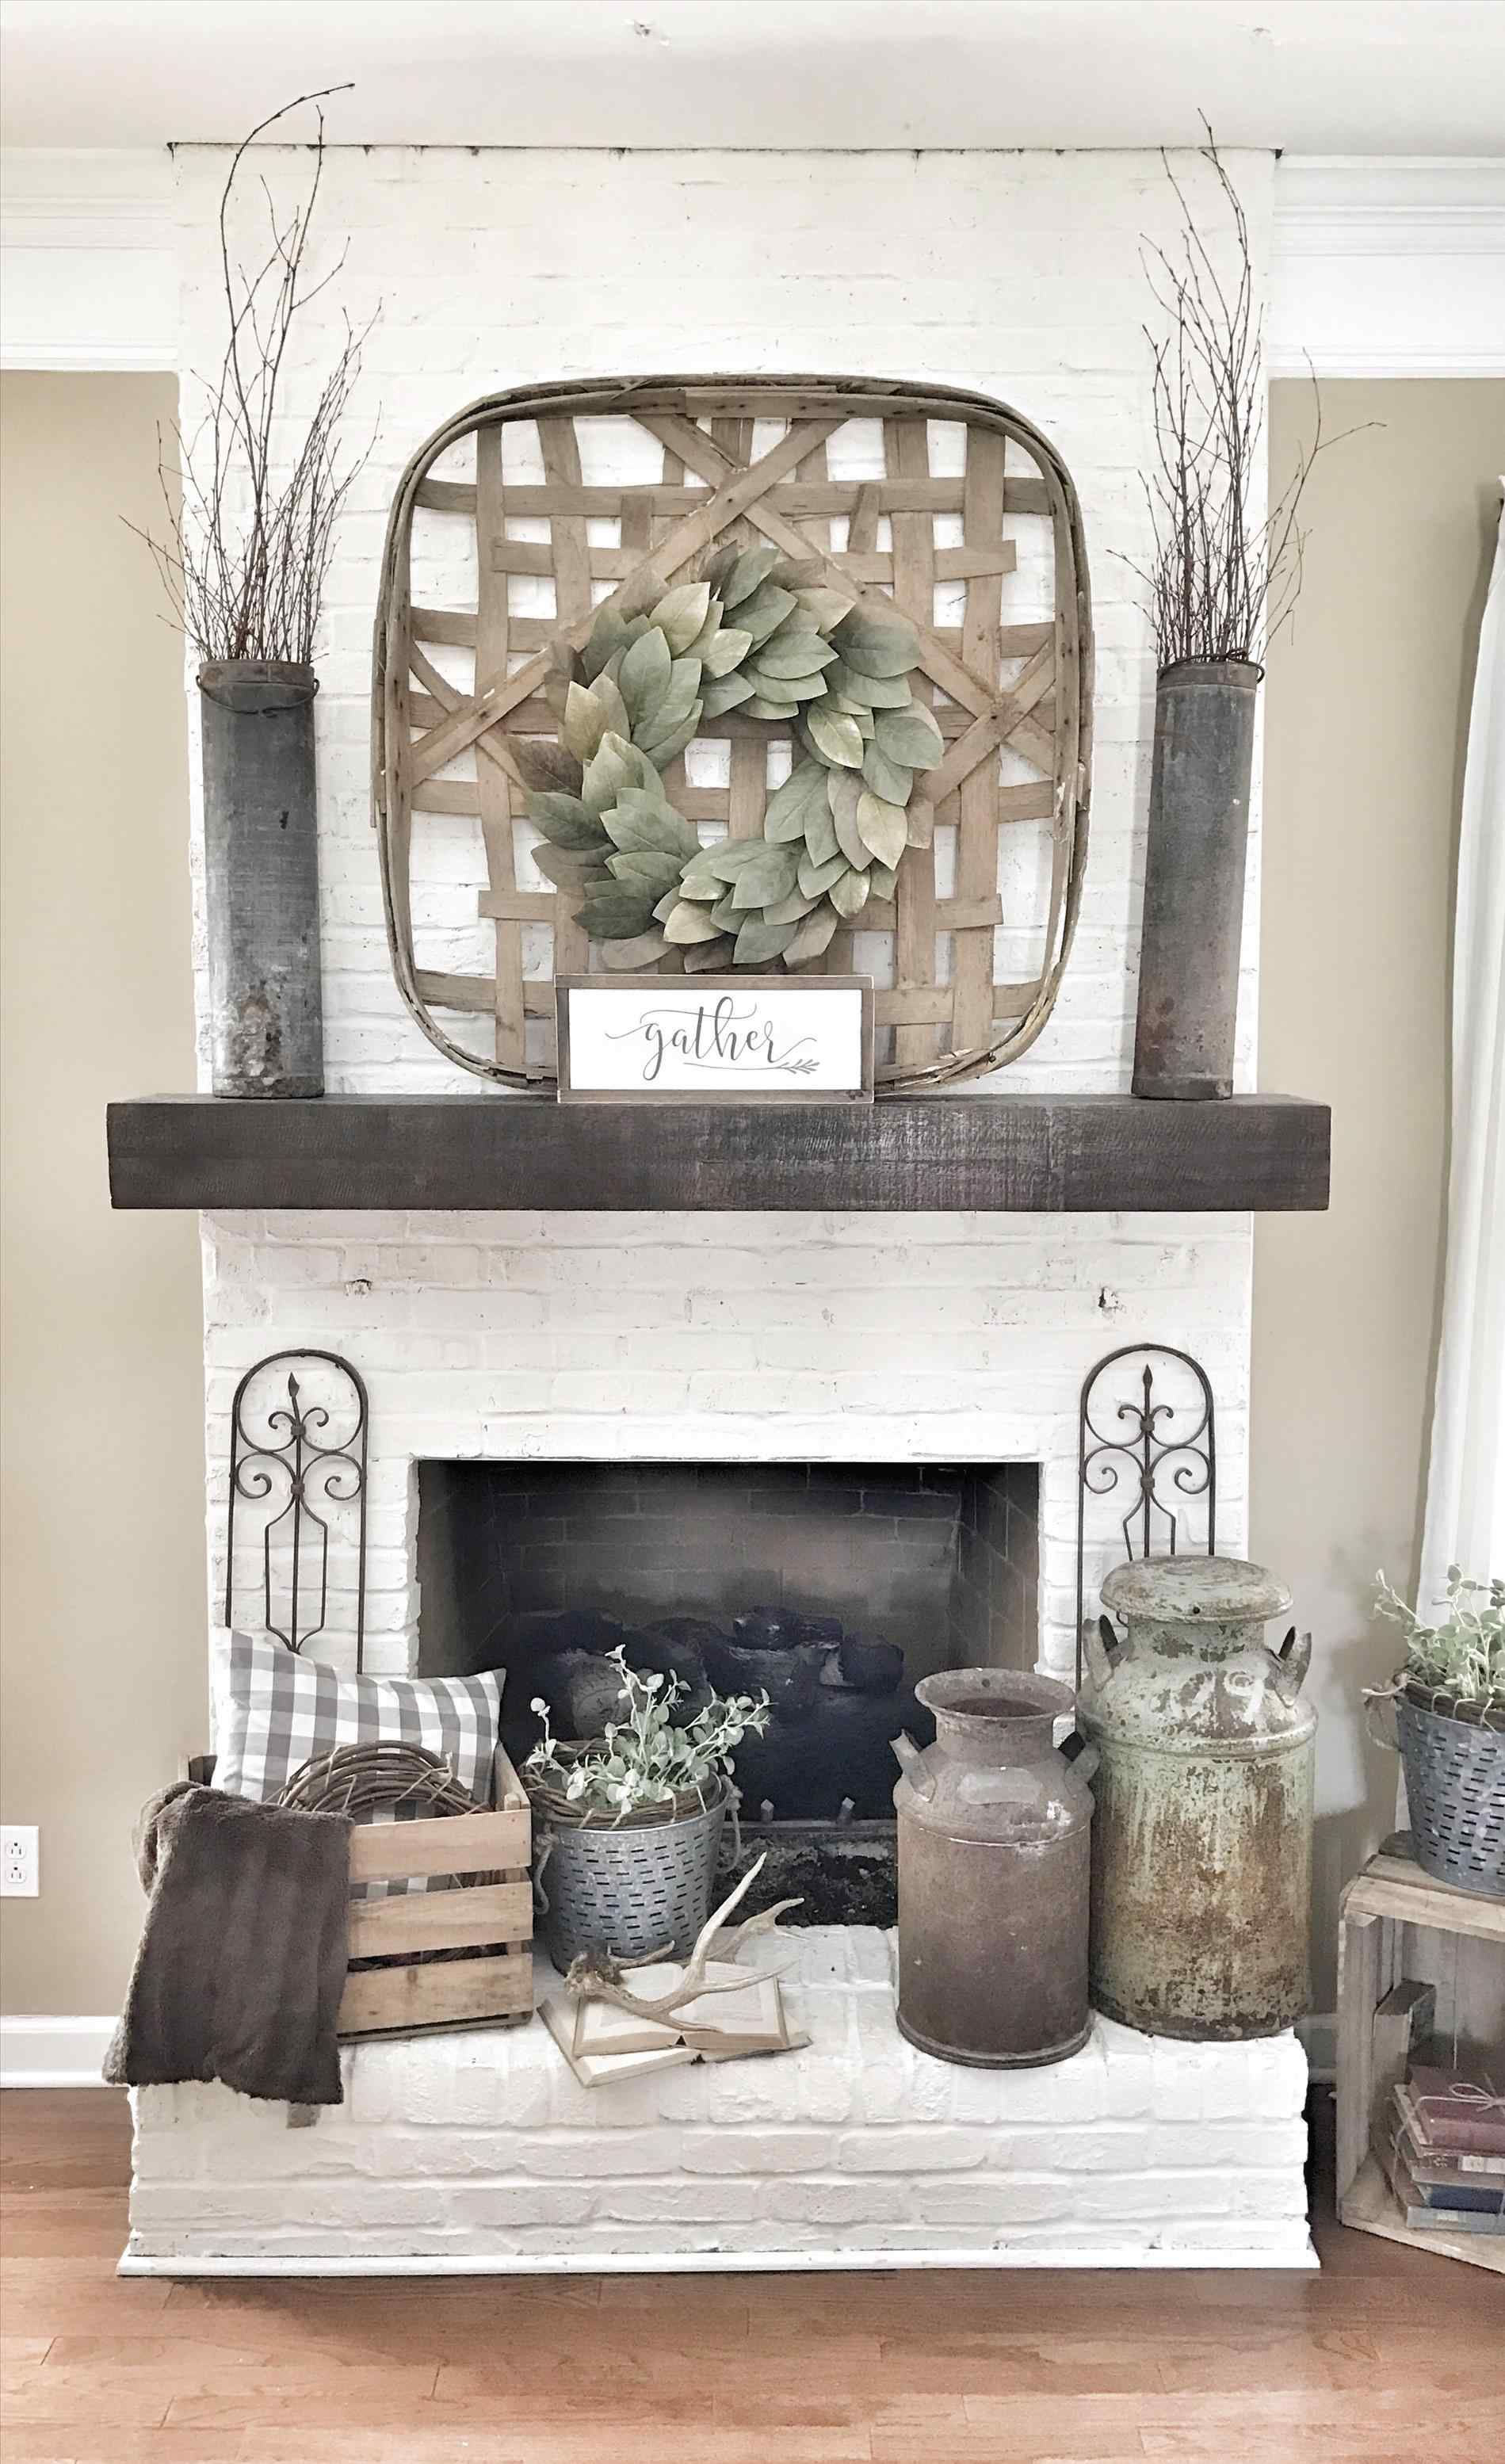 Farmhouse Rustic Fireplace Mantel Decor Pin By Samantha Runge On House Pinterest Farmhouse